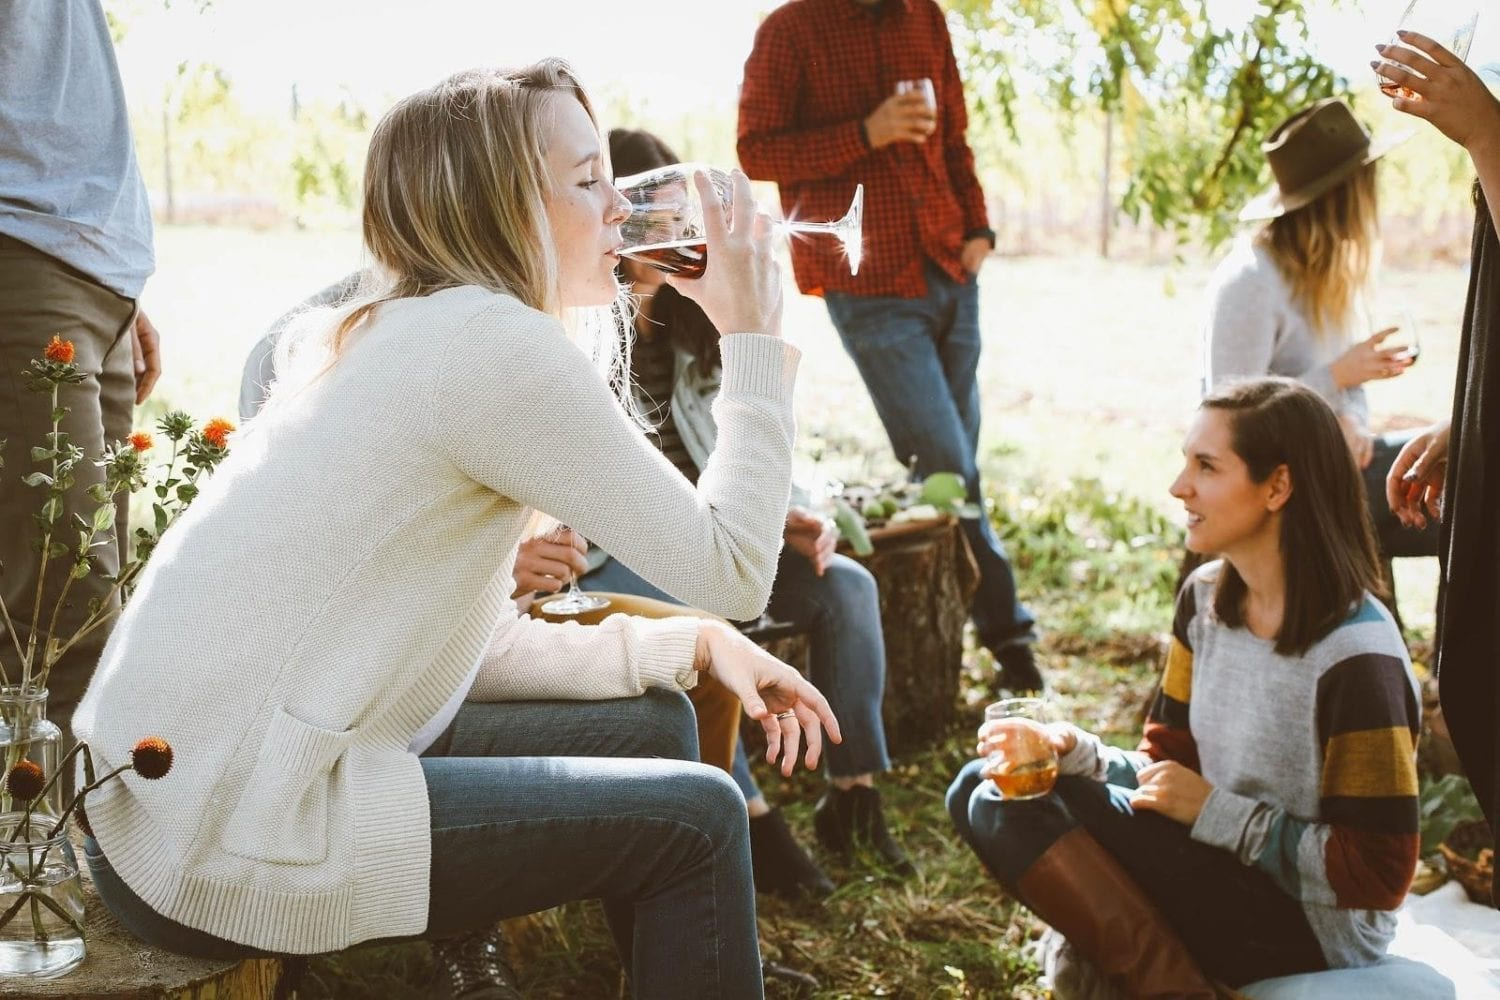 woman drinking red wine surrounded by other people outside drinking